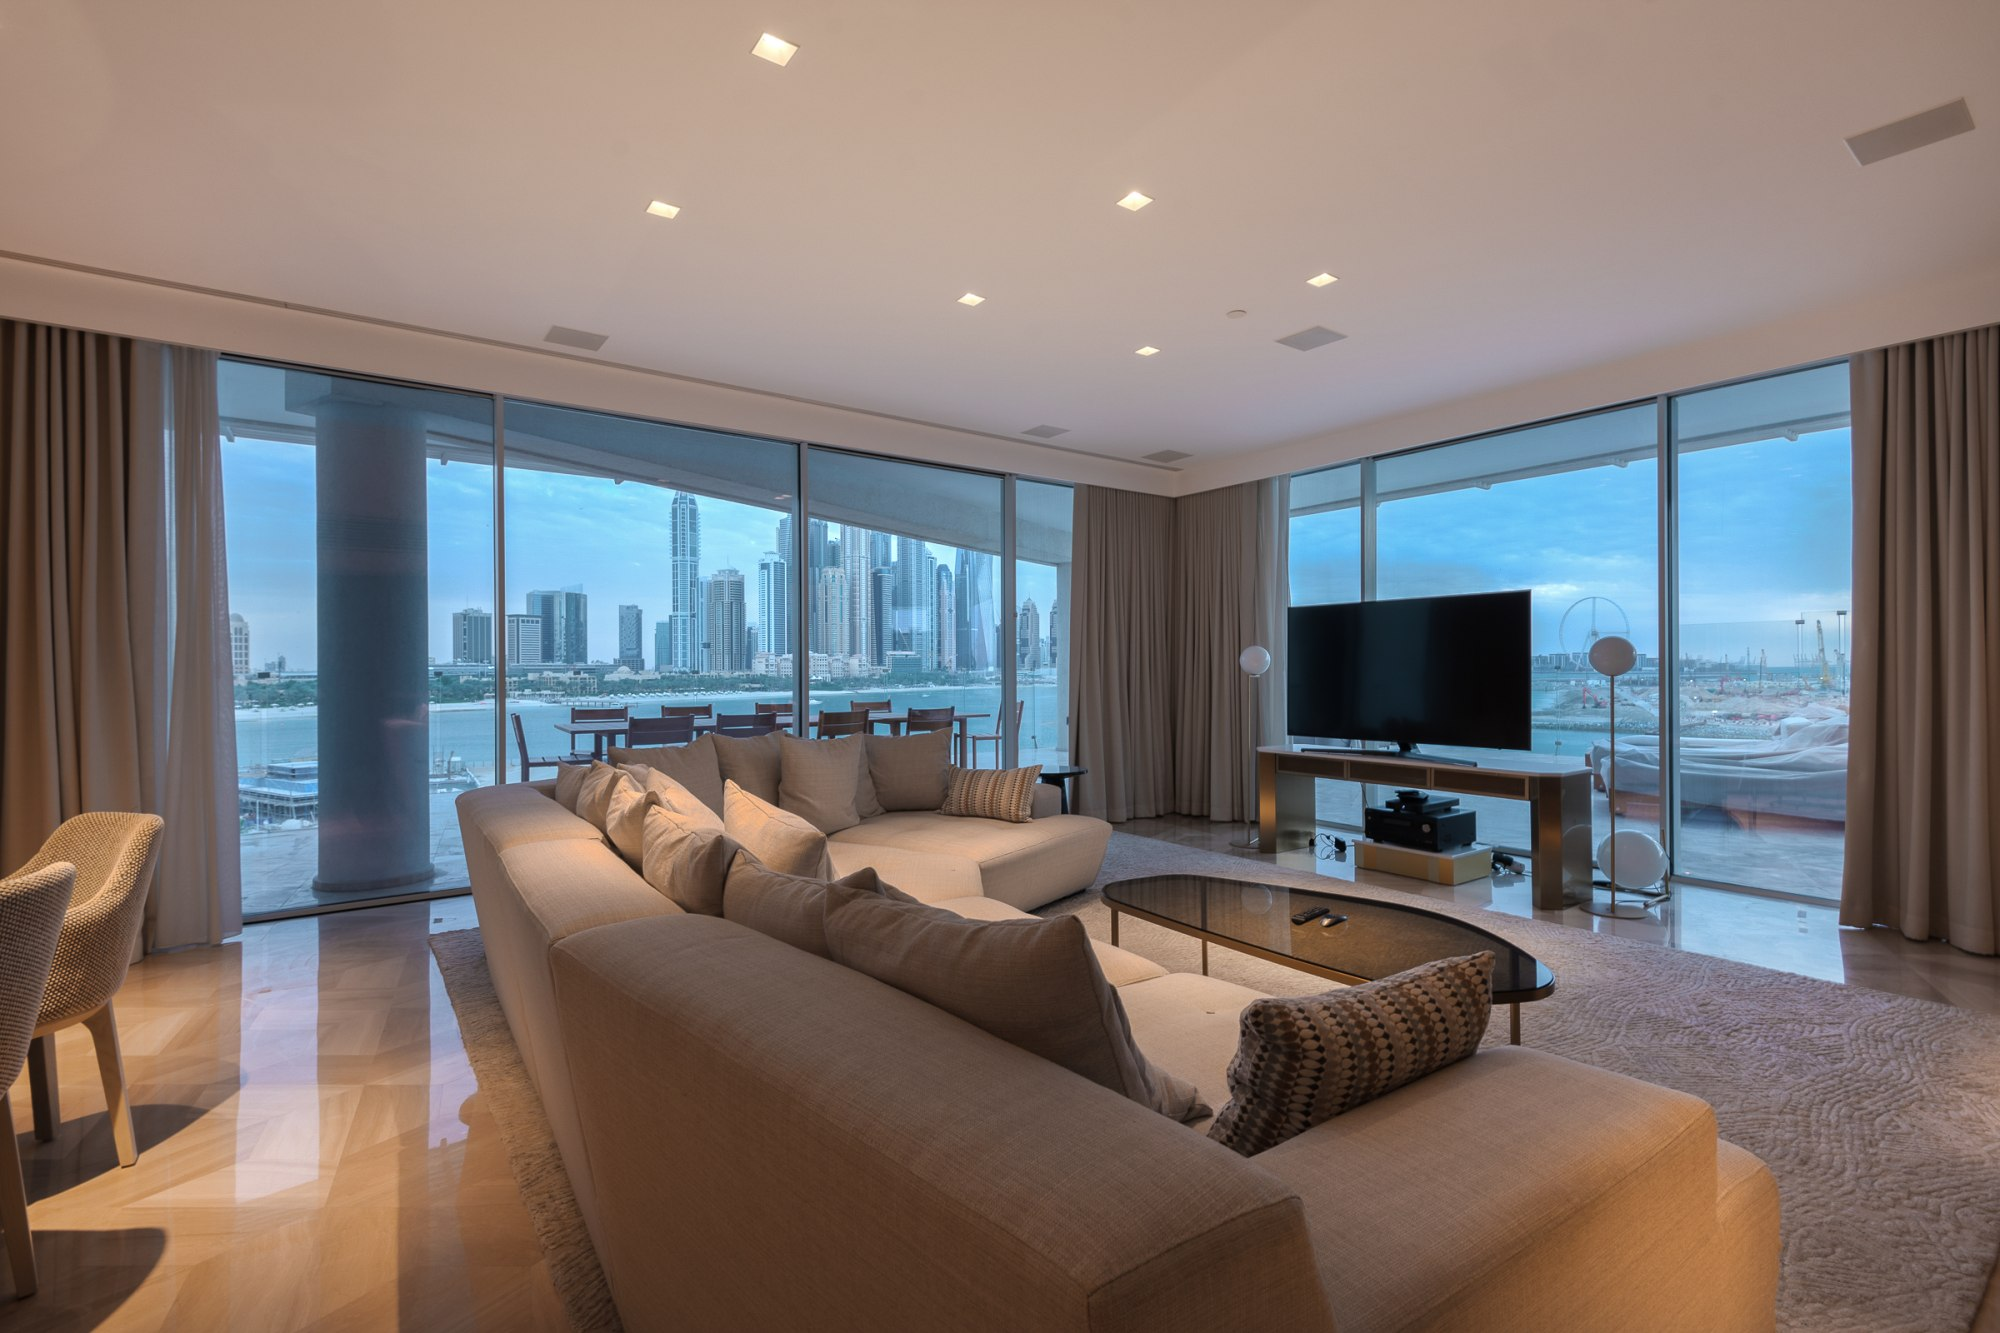 Full Sea View Penthouse in 5* Resort | 3 Bed